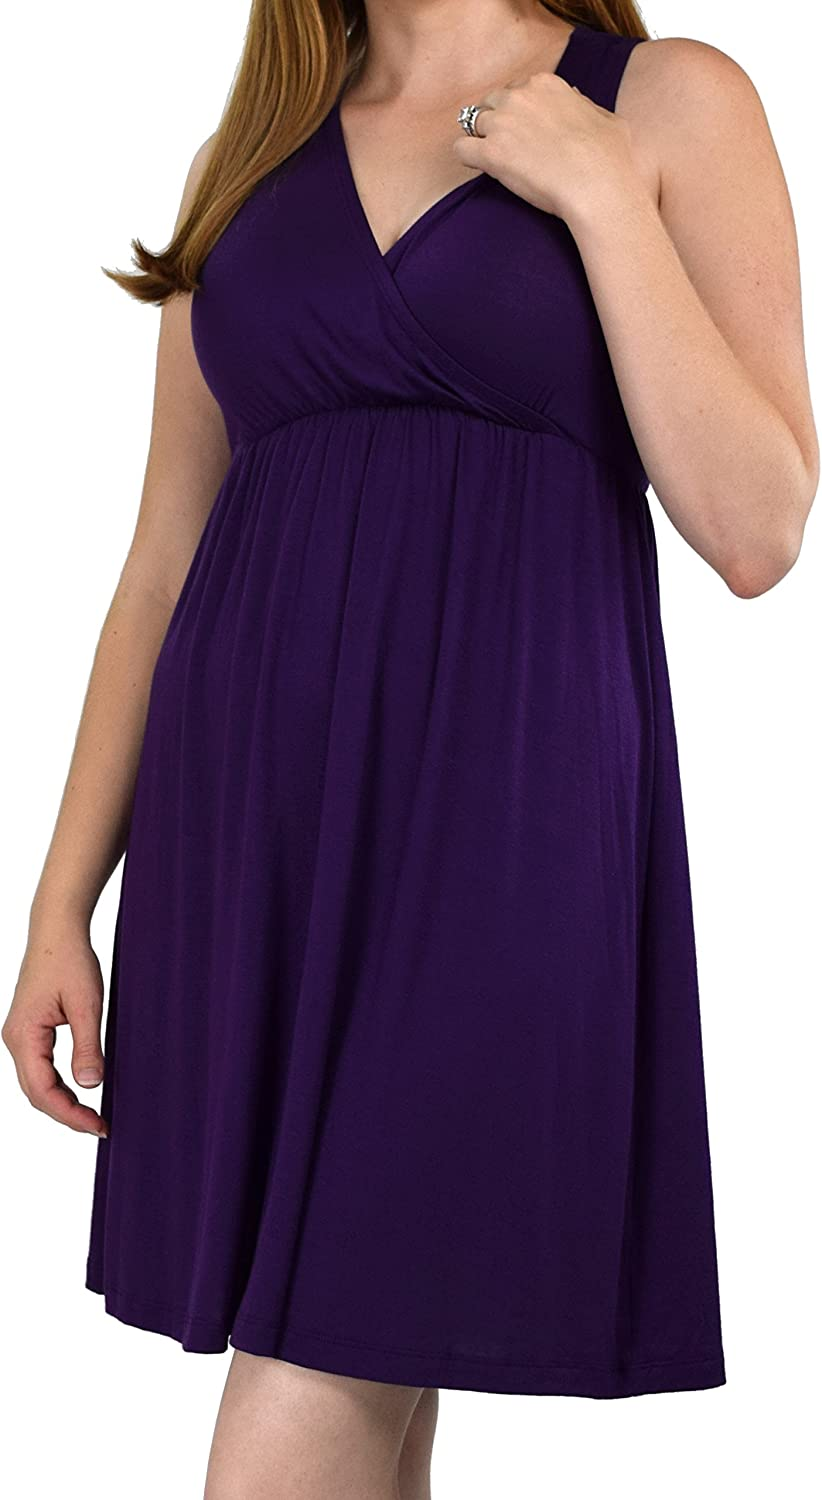 Embrace Your Bump 2 in 1 Super Soft Maternity & Nursing Nightgown